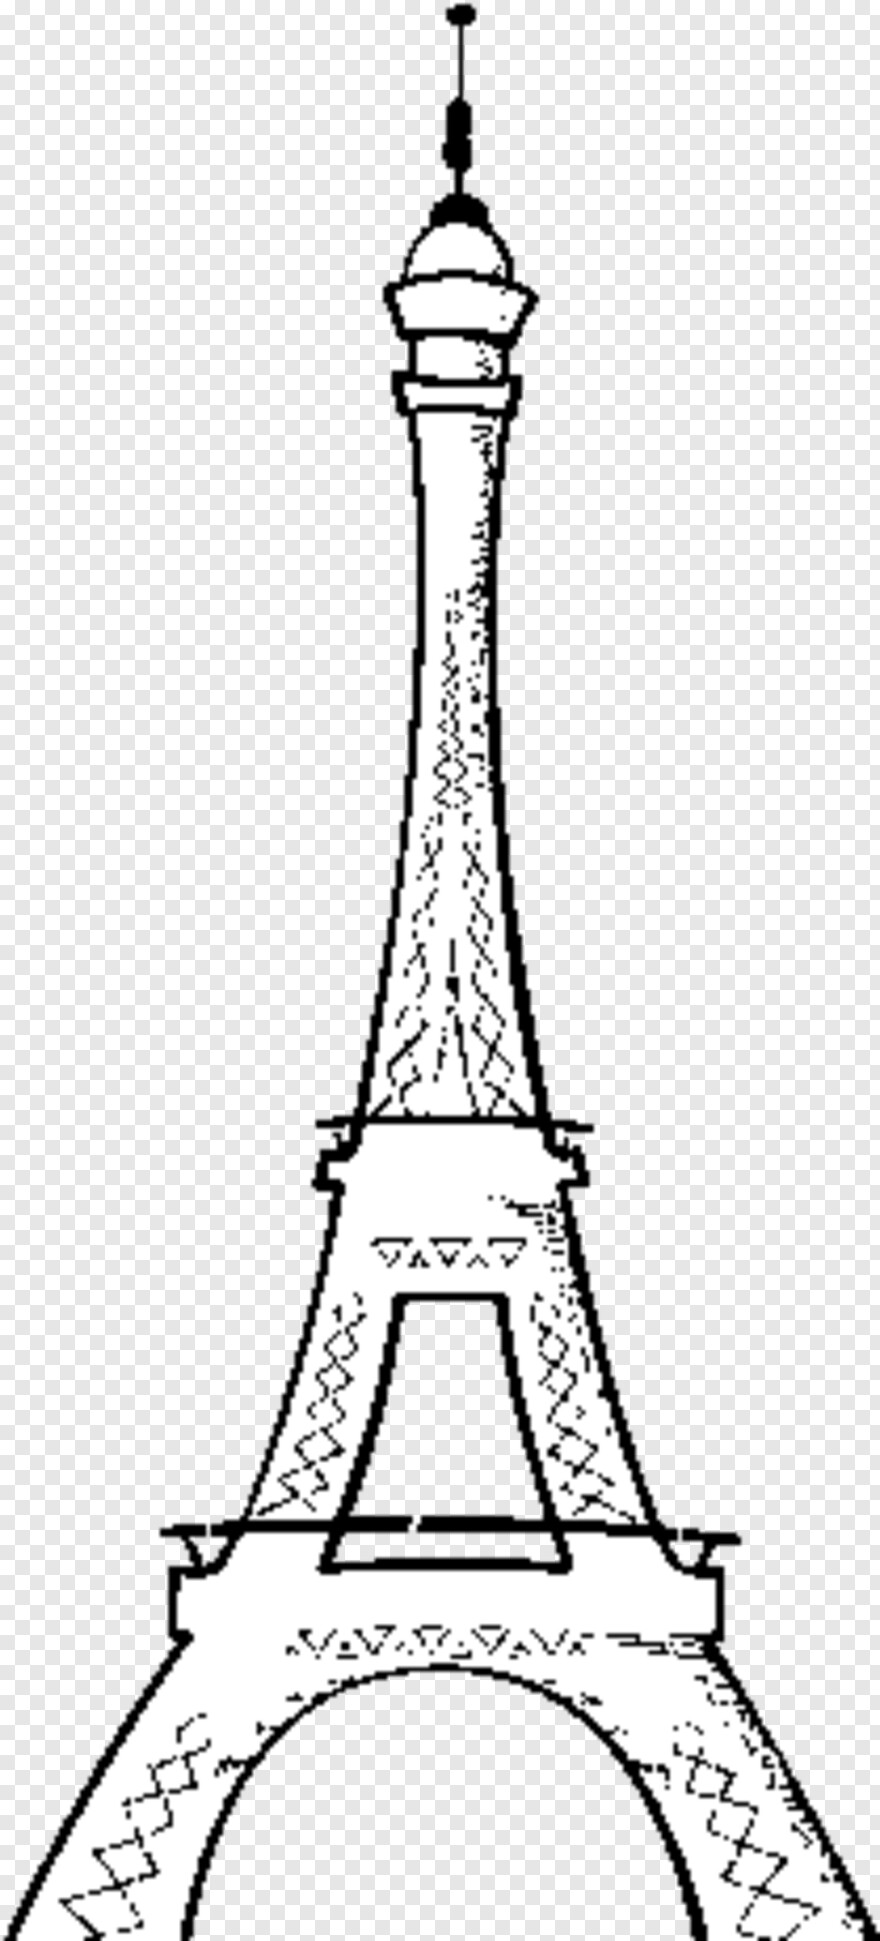 - Eiffel Tower - The Eiffel Tower Coloring Page, Transparent Png